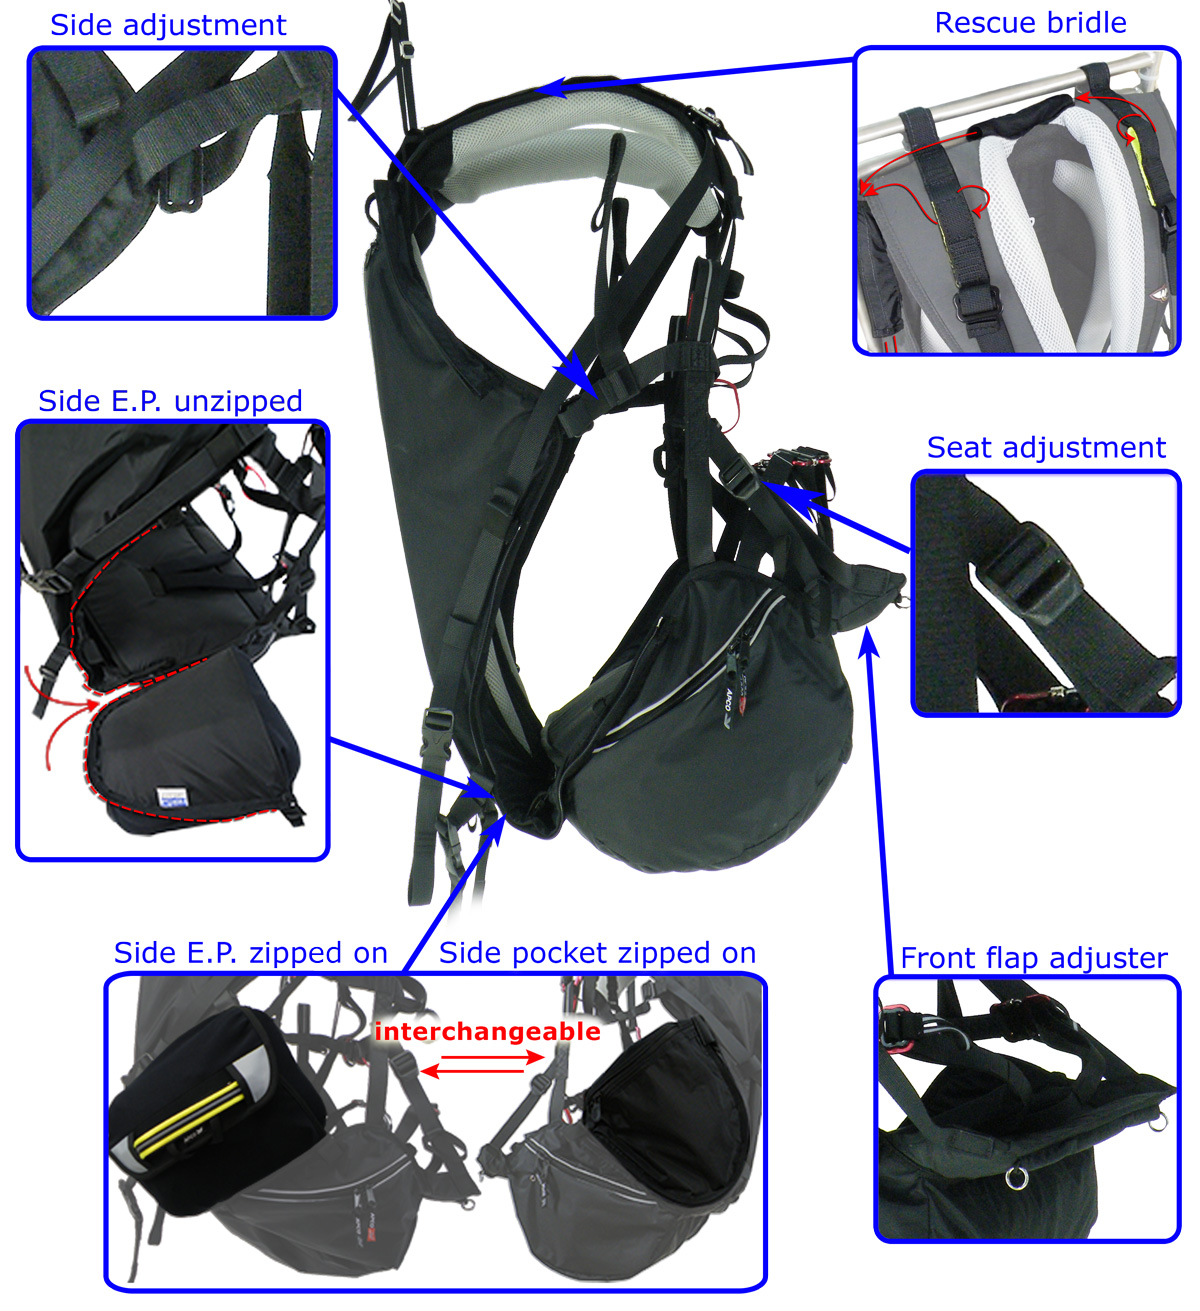 SLT PM Low Hook-In harness features